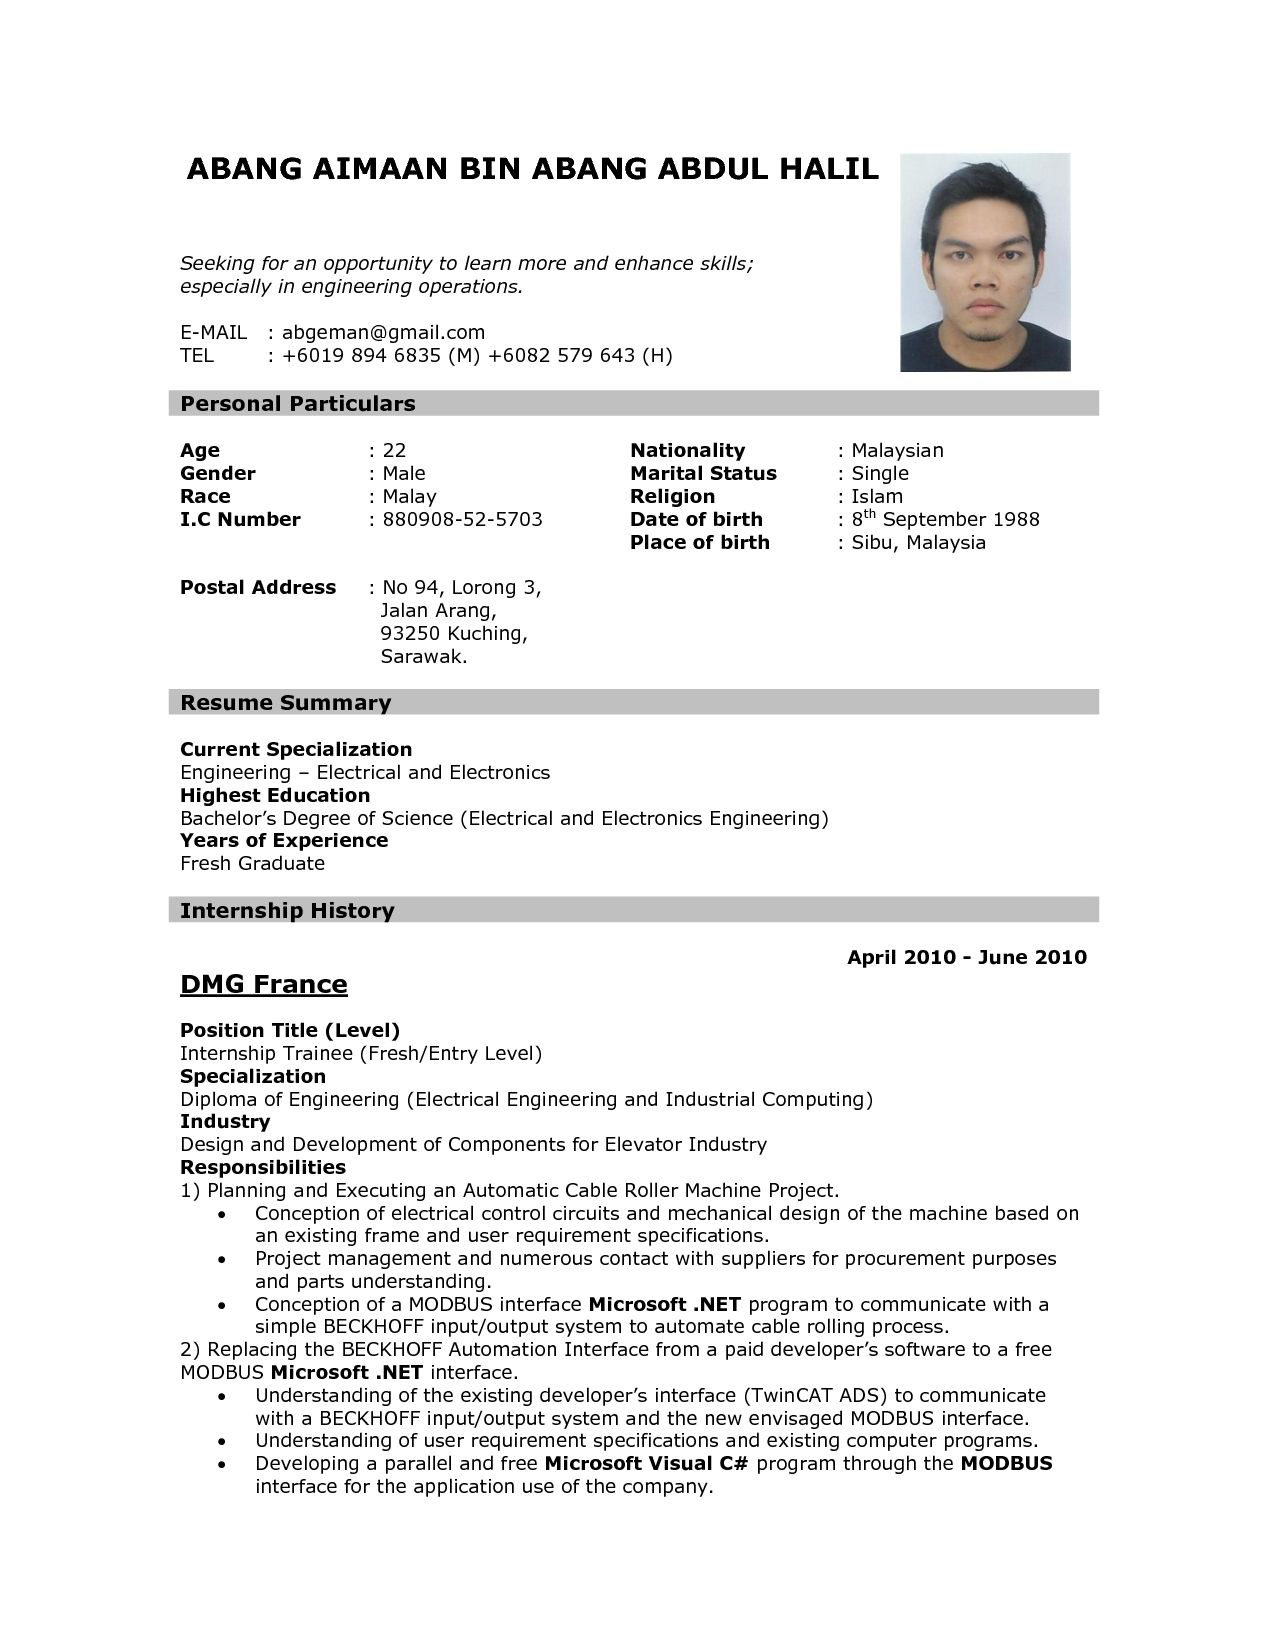 medical transcriptionist resume format update resume format aurt digimerge net area s manager cover letter